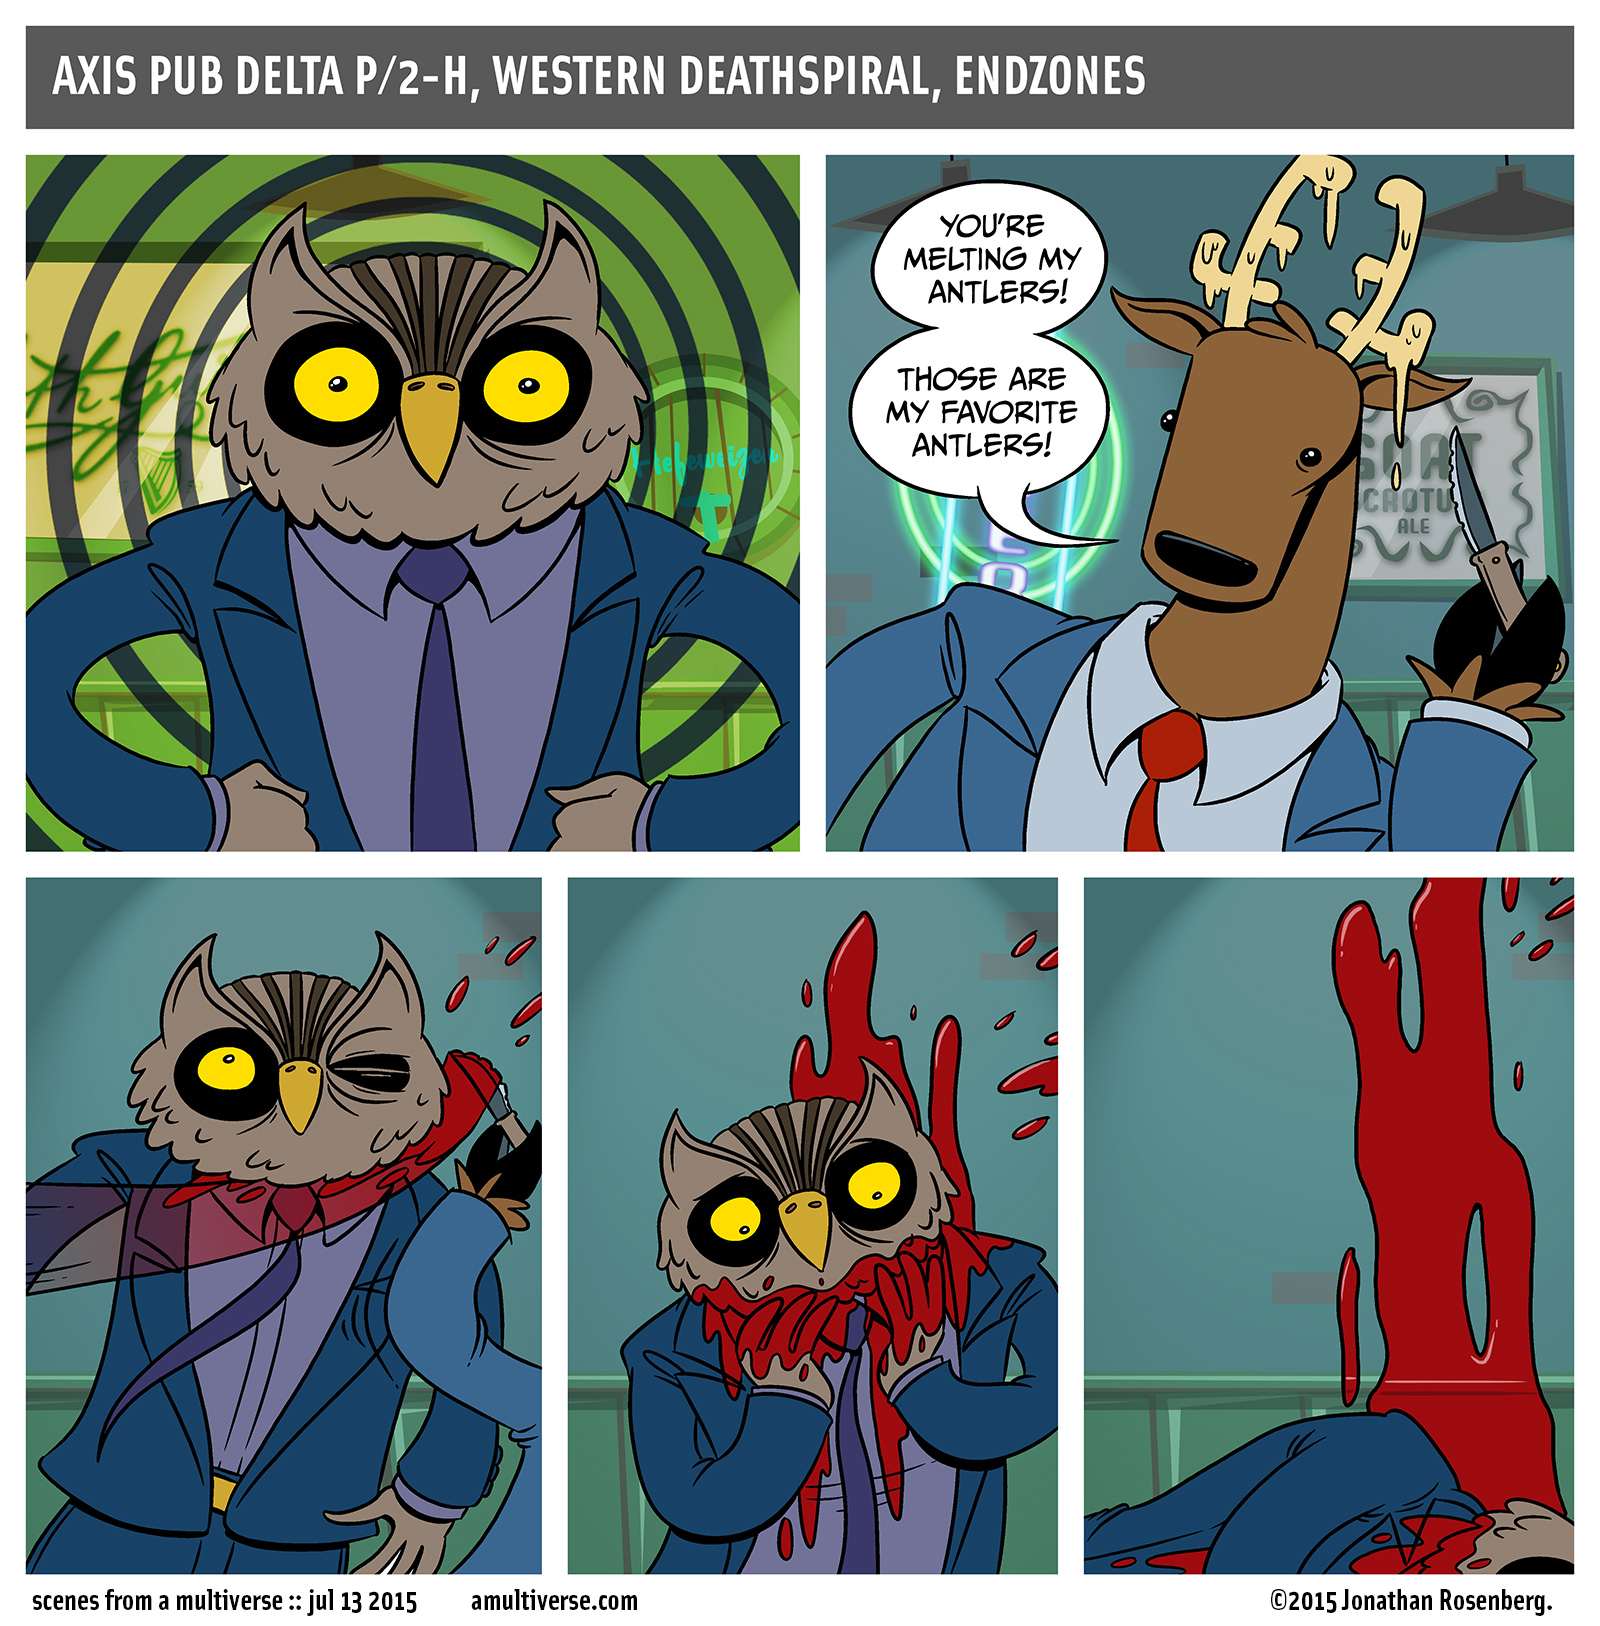 r.i.p. horace greenstein, scary owl lawyer